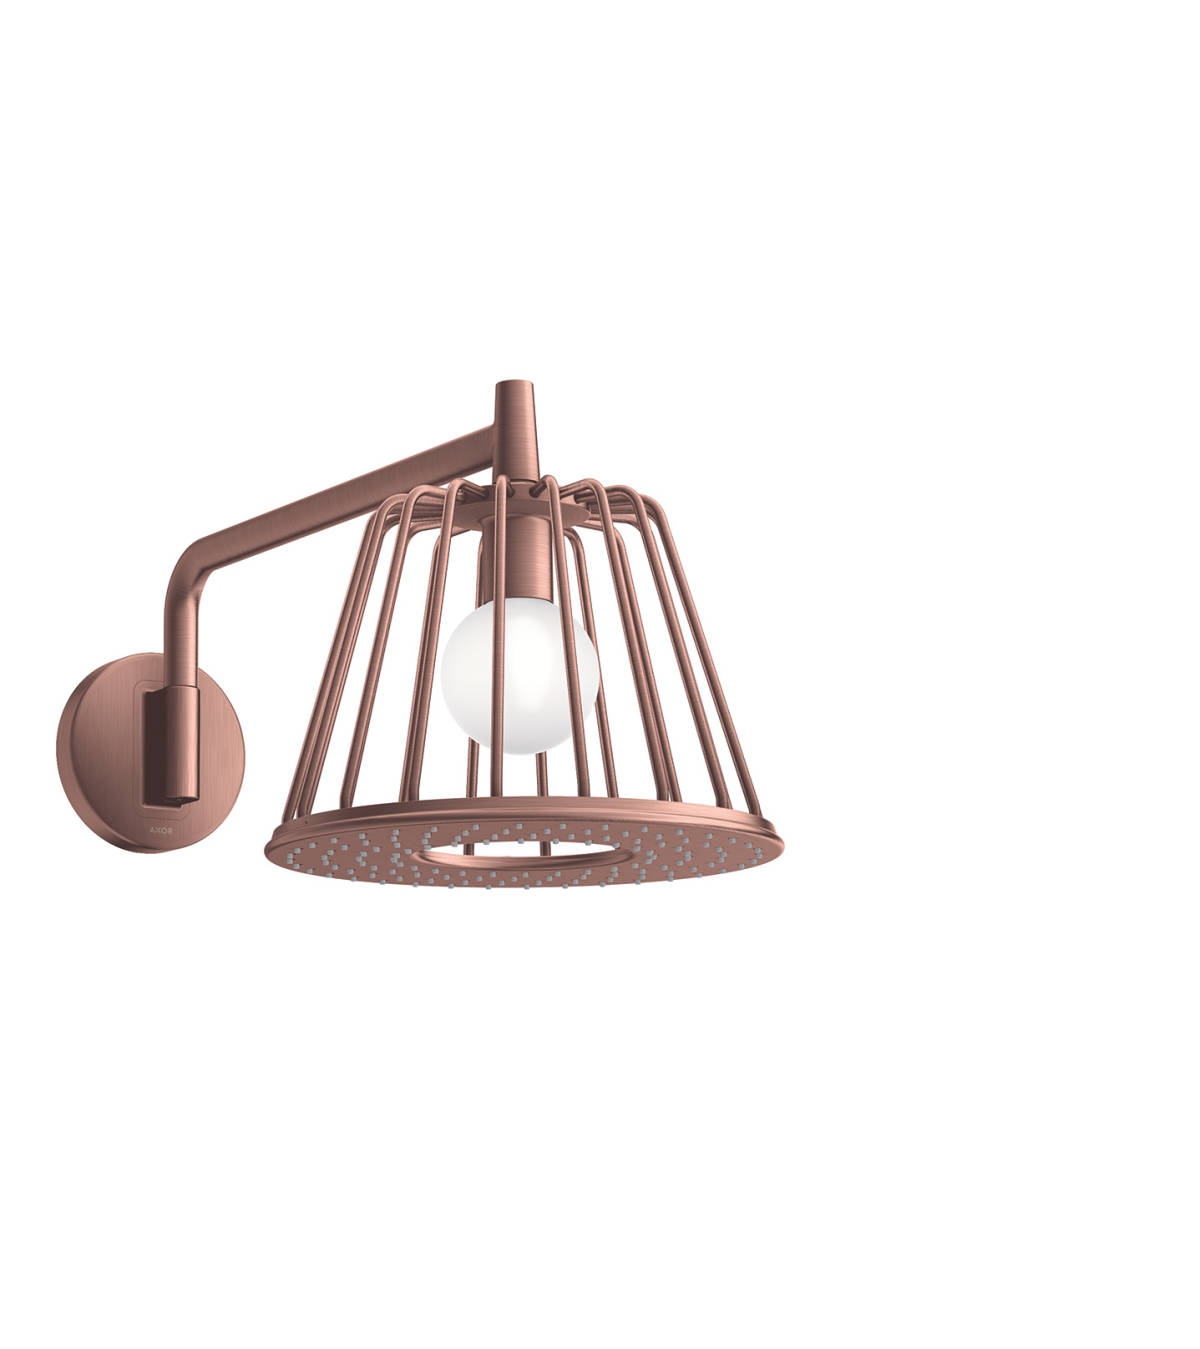 LampShower 275 1jet with shower arm, Brushed Red Gold, 26031310